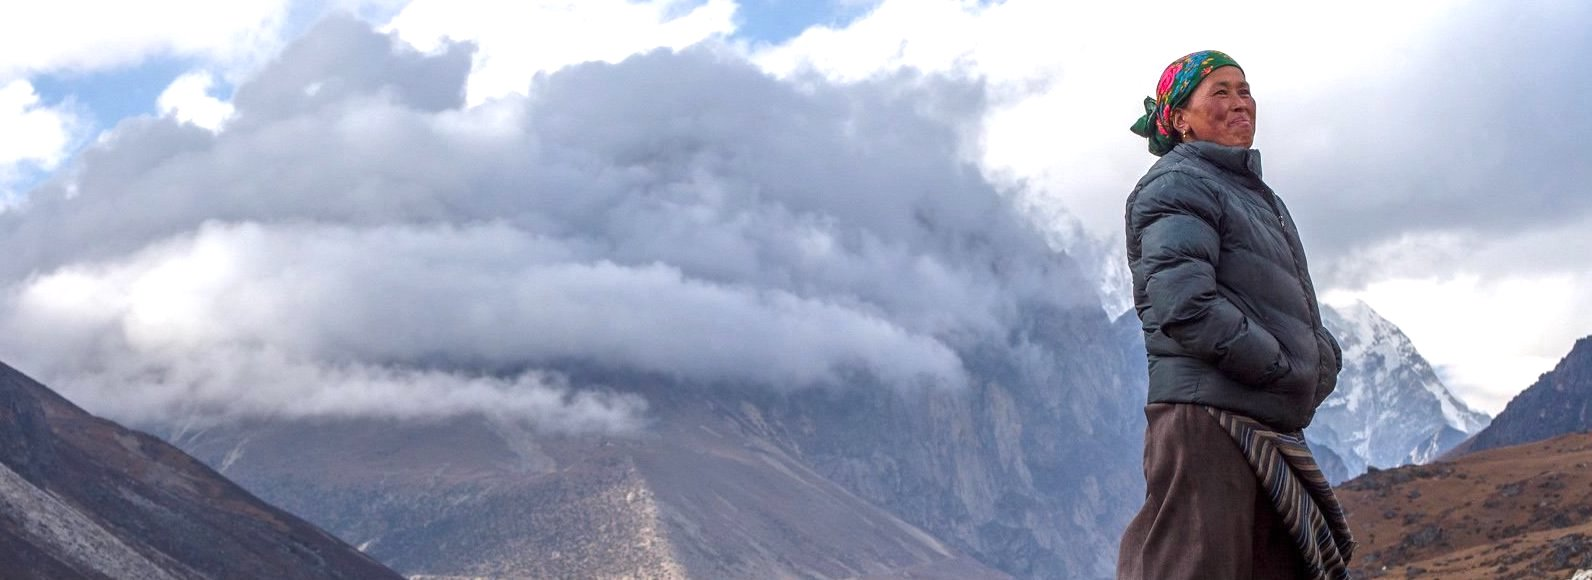 Life as a Sherpa in the age of climate change, a trio of stories - Landscape News